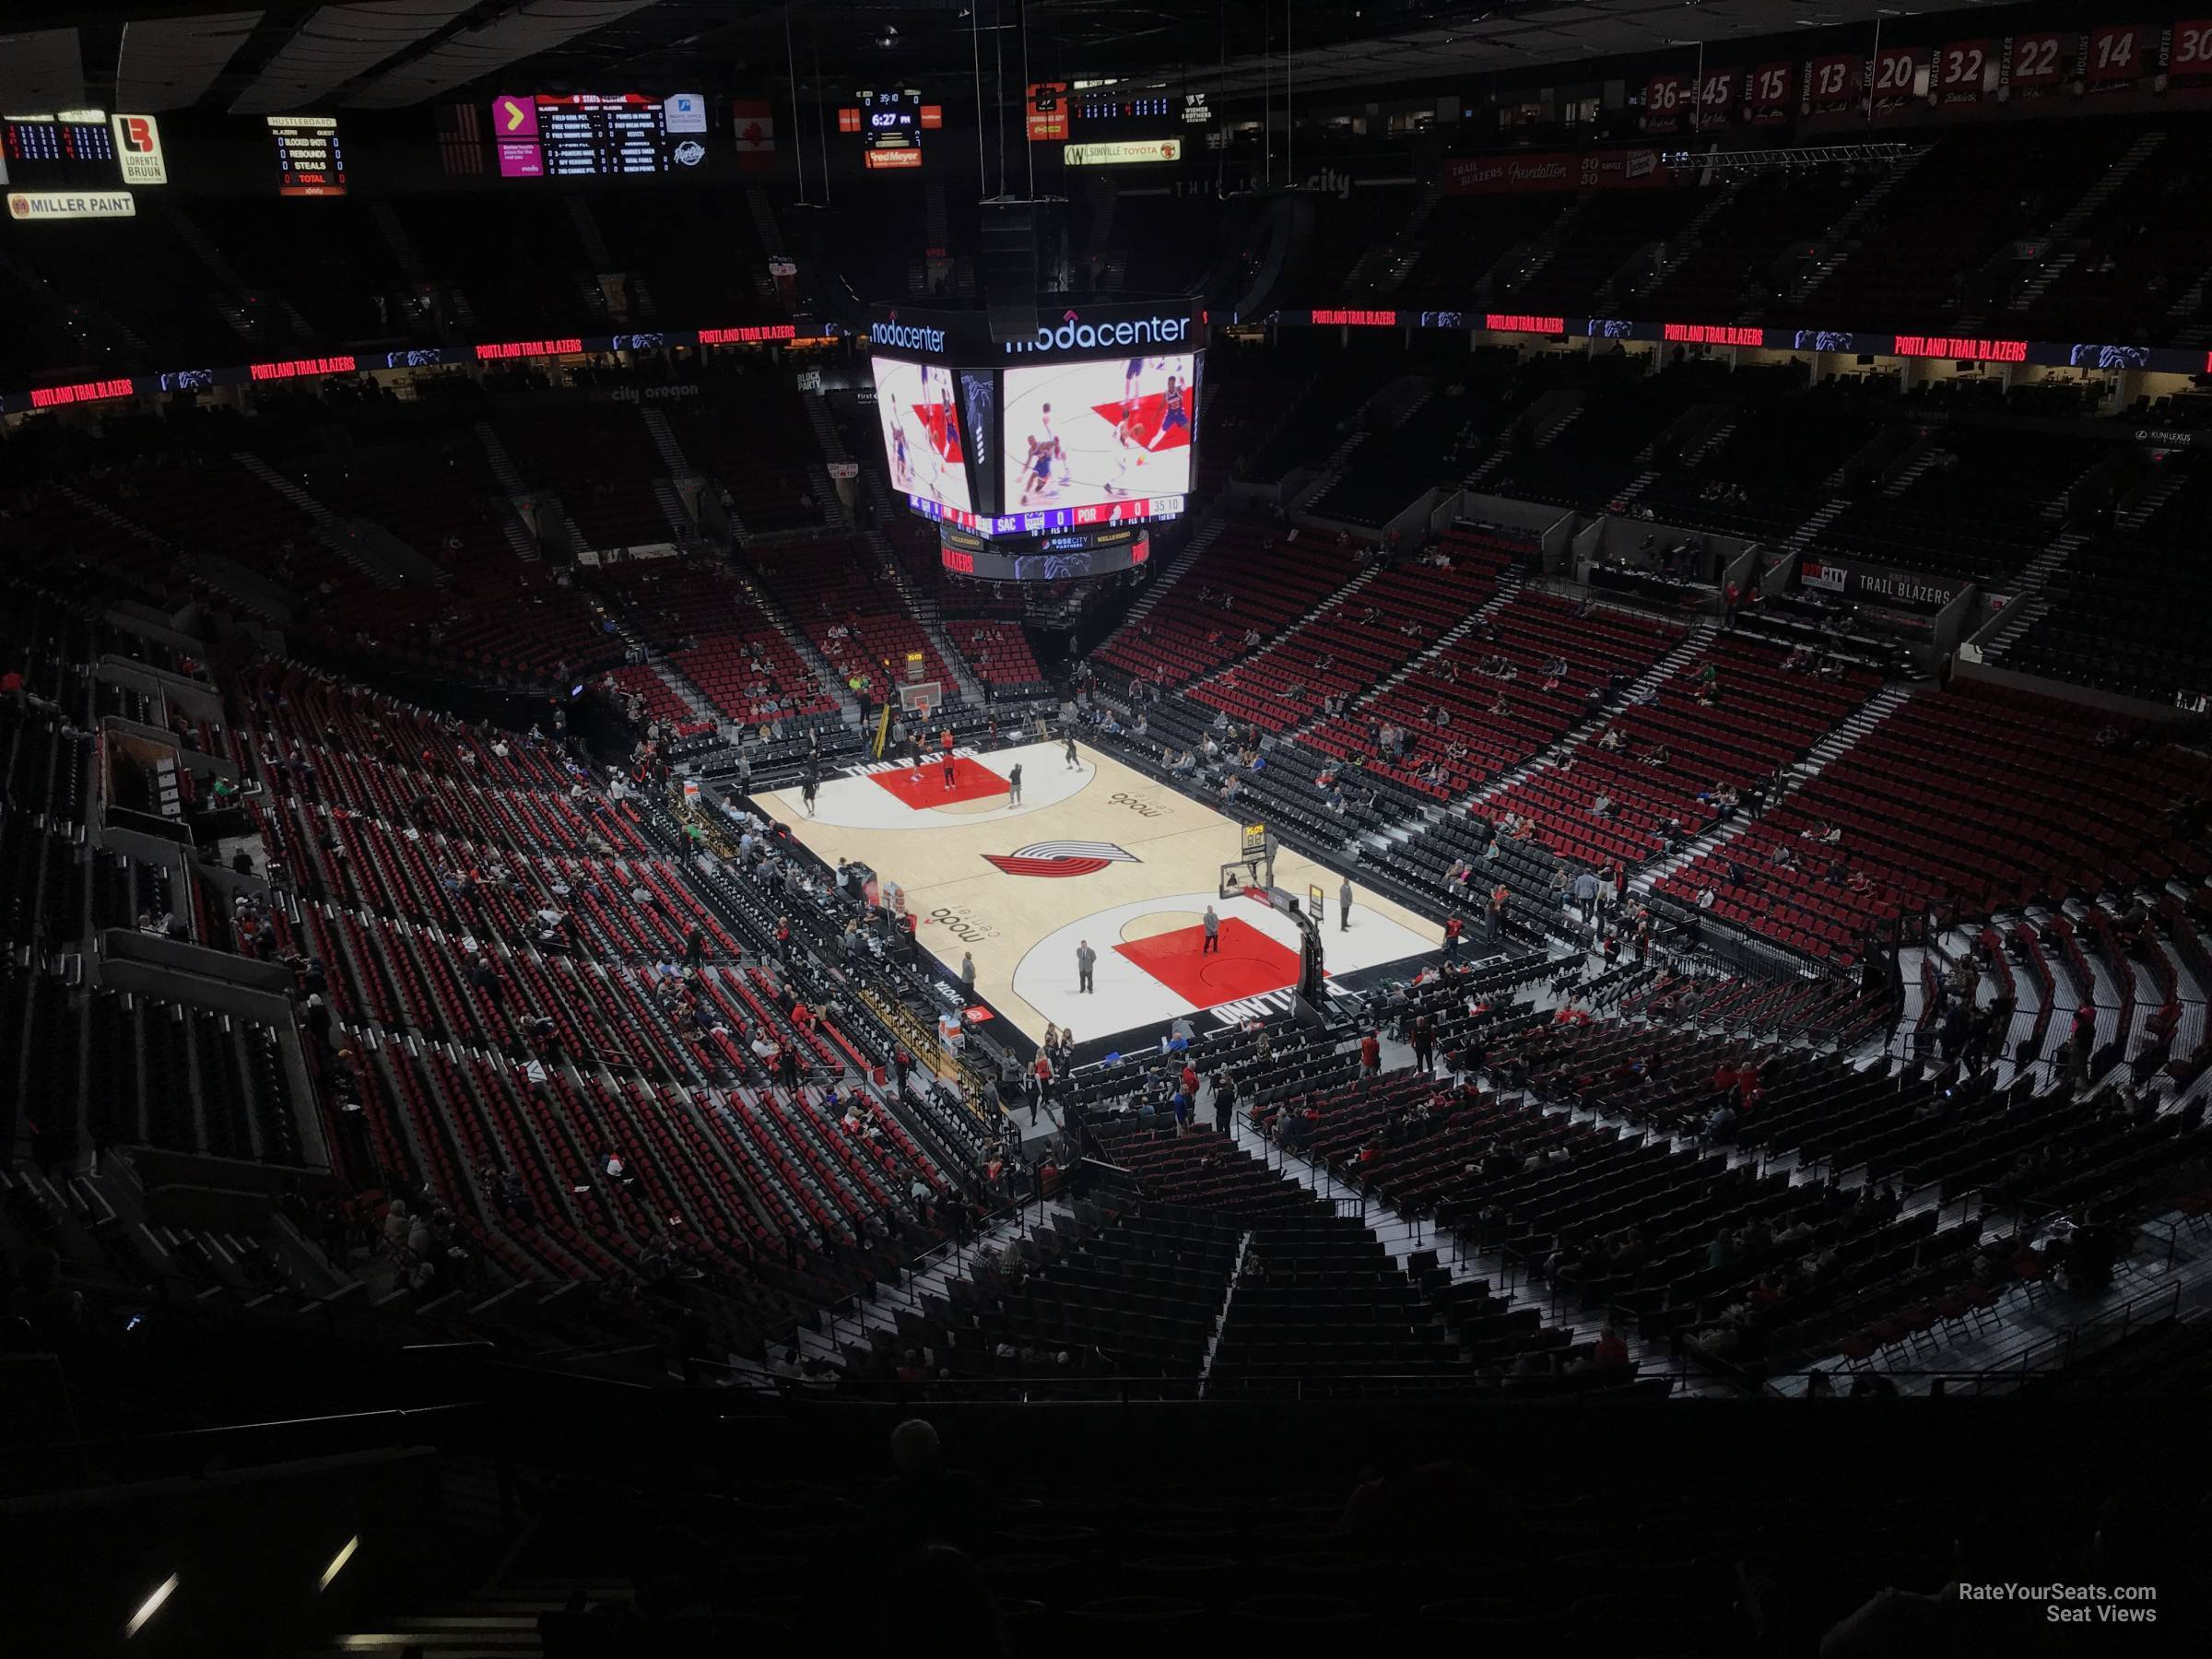 Section 329 seat view